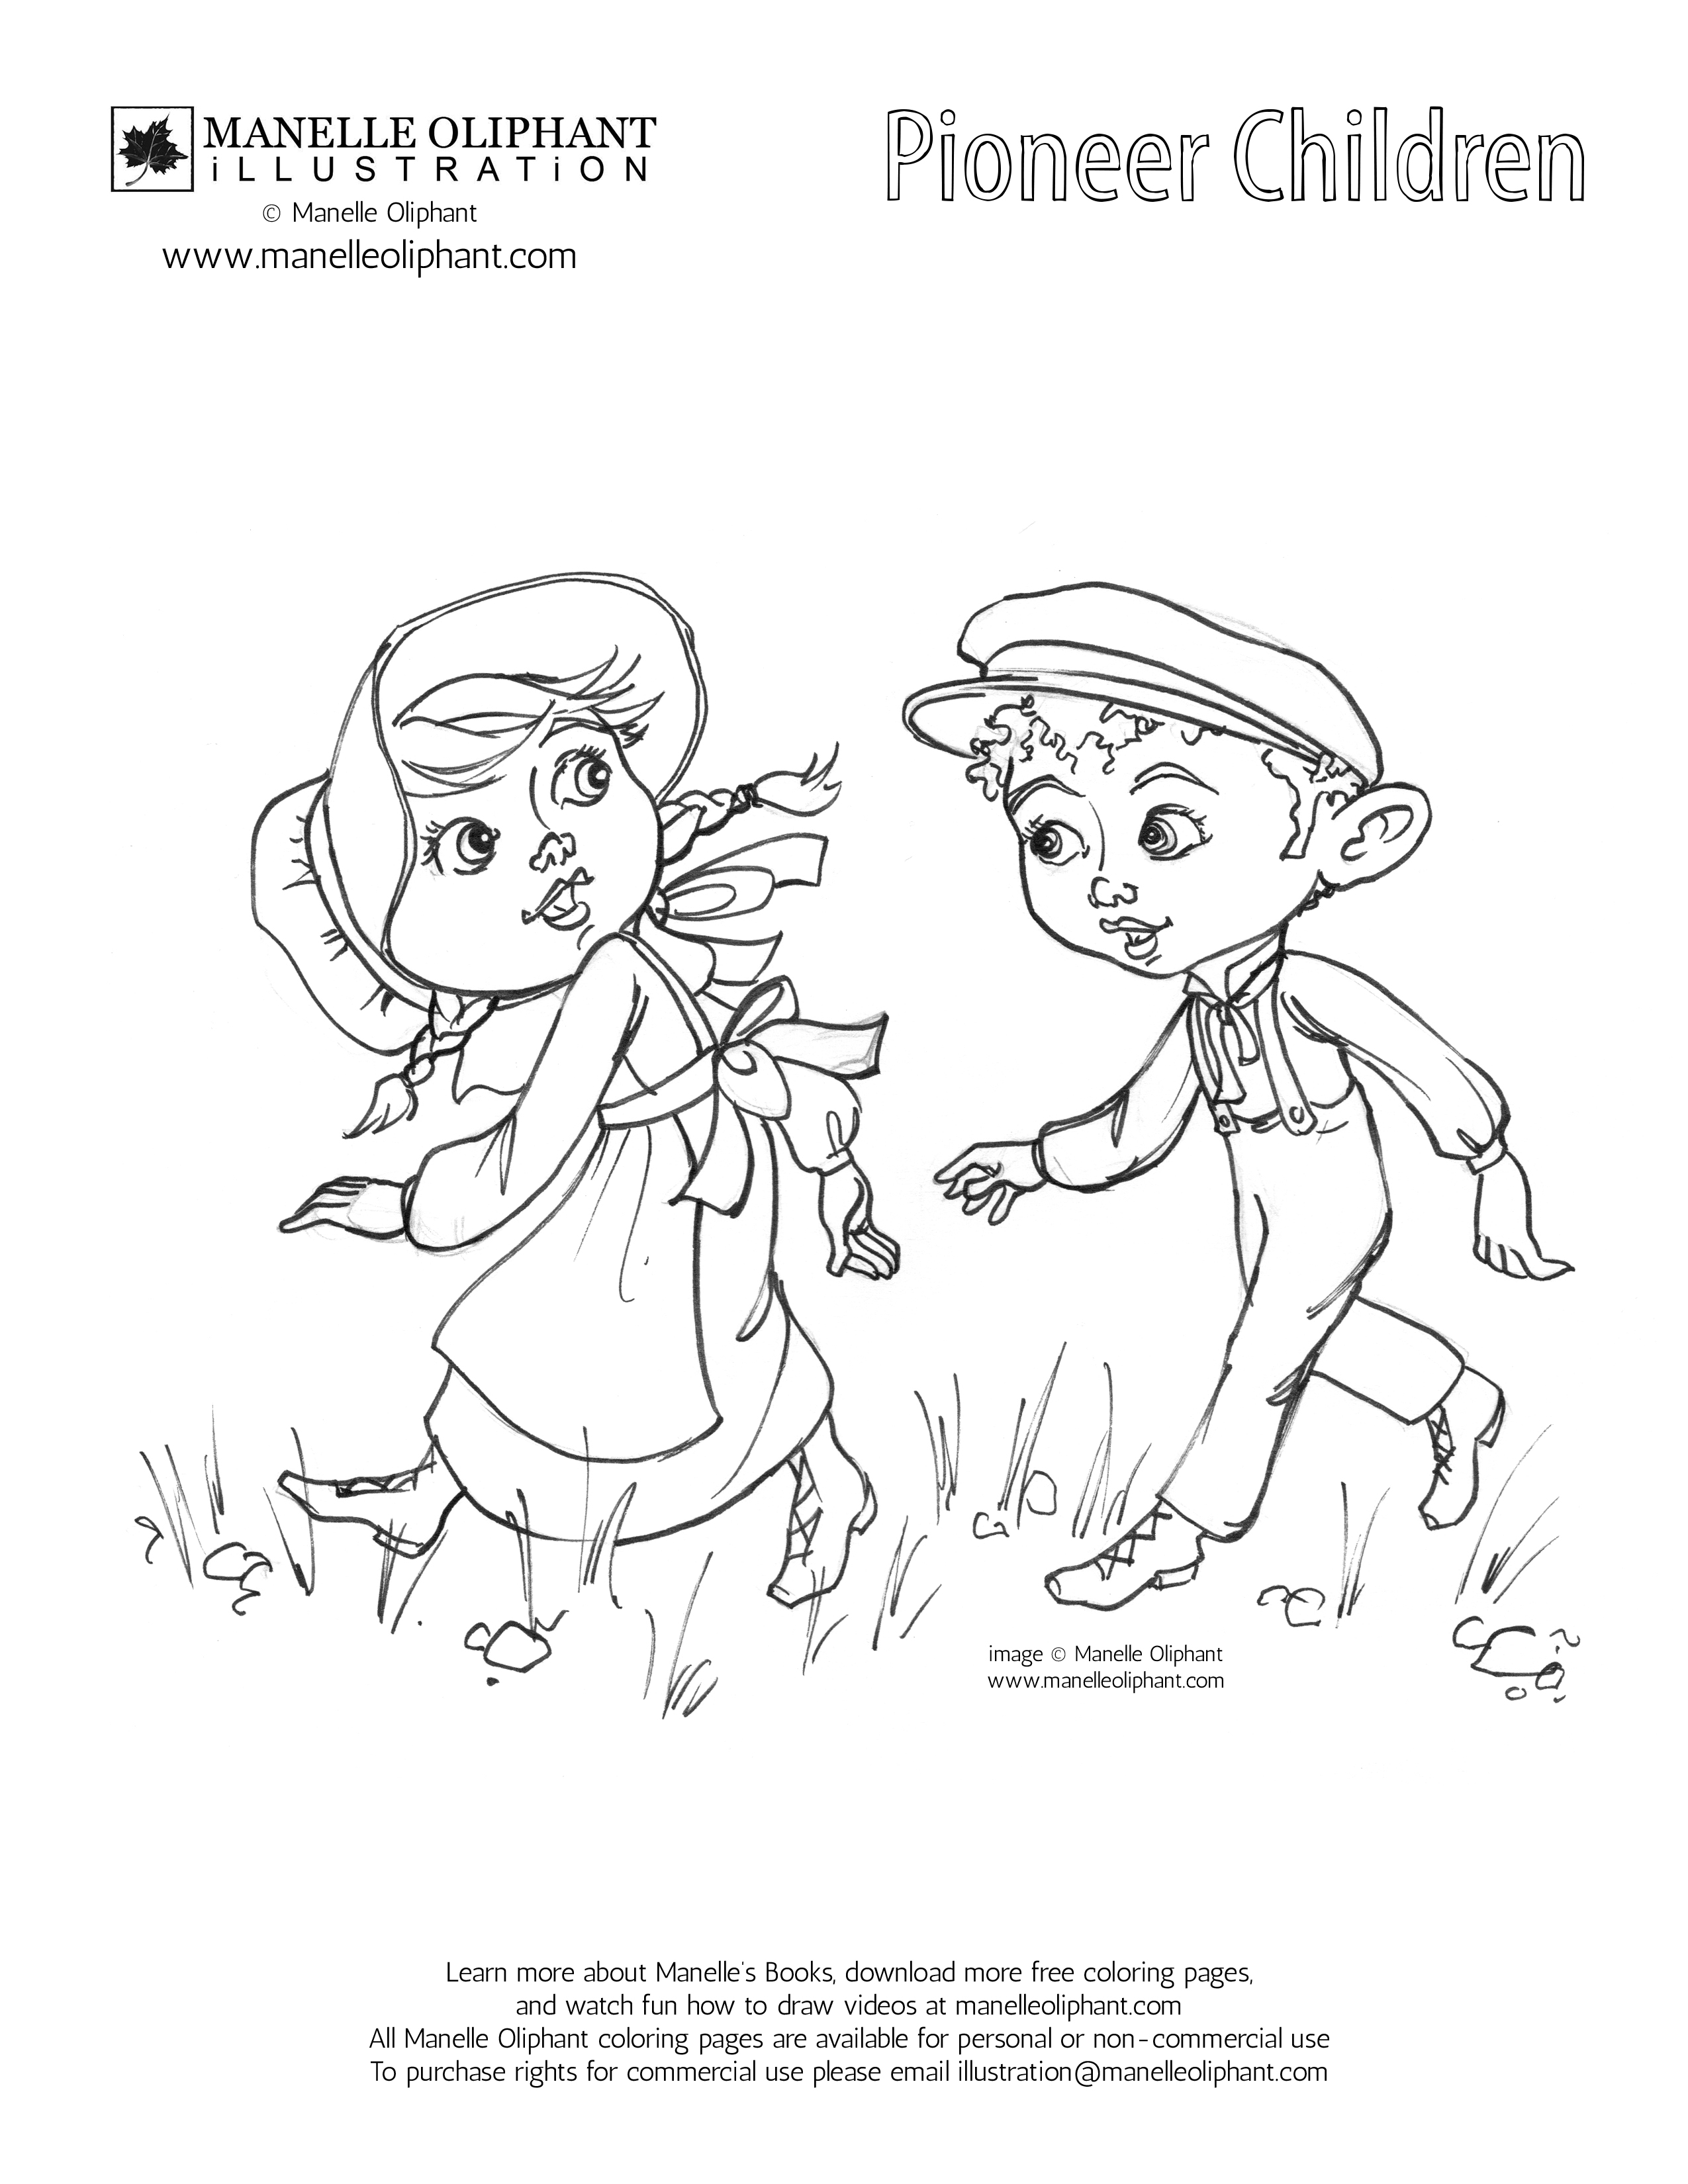 2550x3300 Manelle Oliphant Illustration Free Coloring Page Friday Pioneer